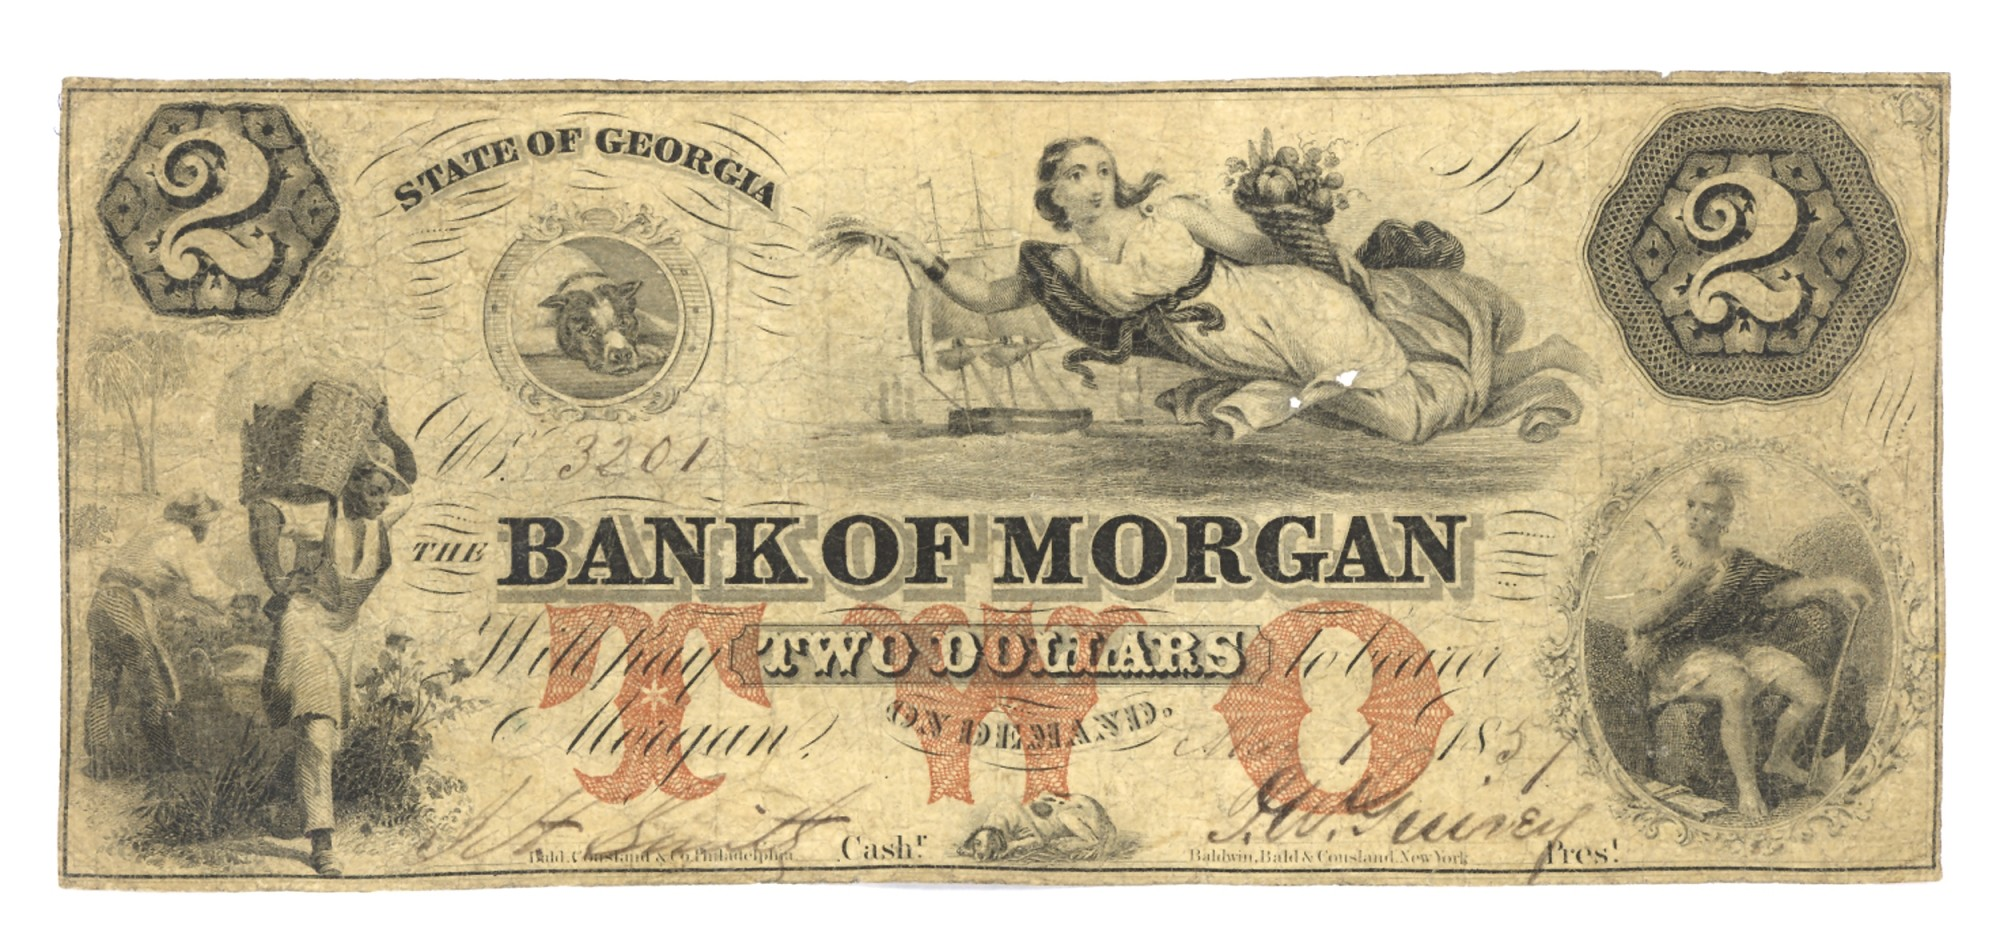 BANK OF MORGAN, GEORGIA, $2 NOTE